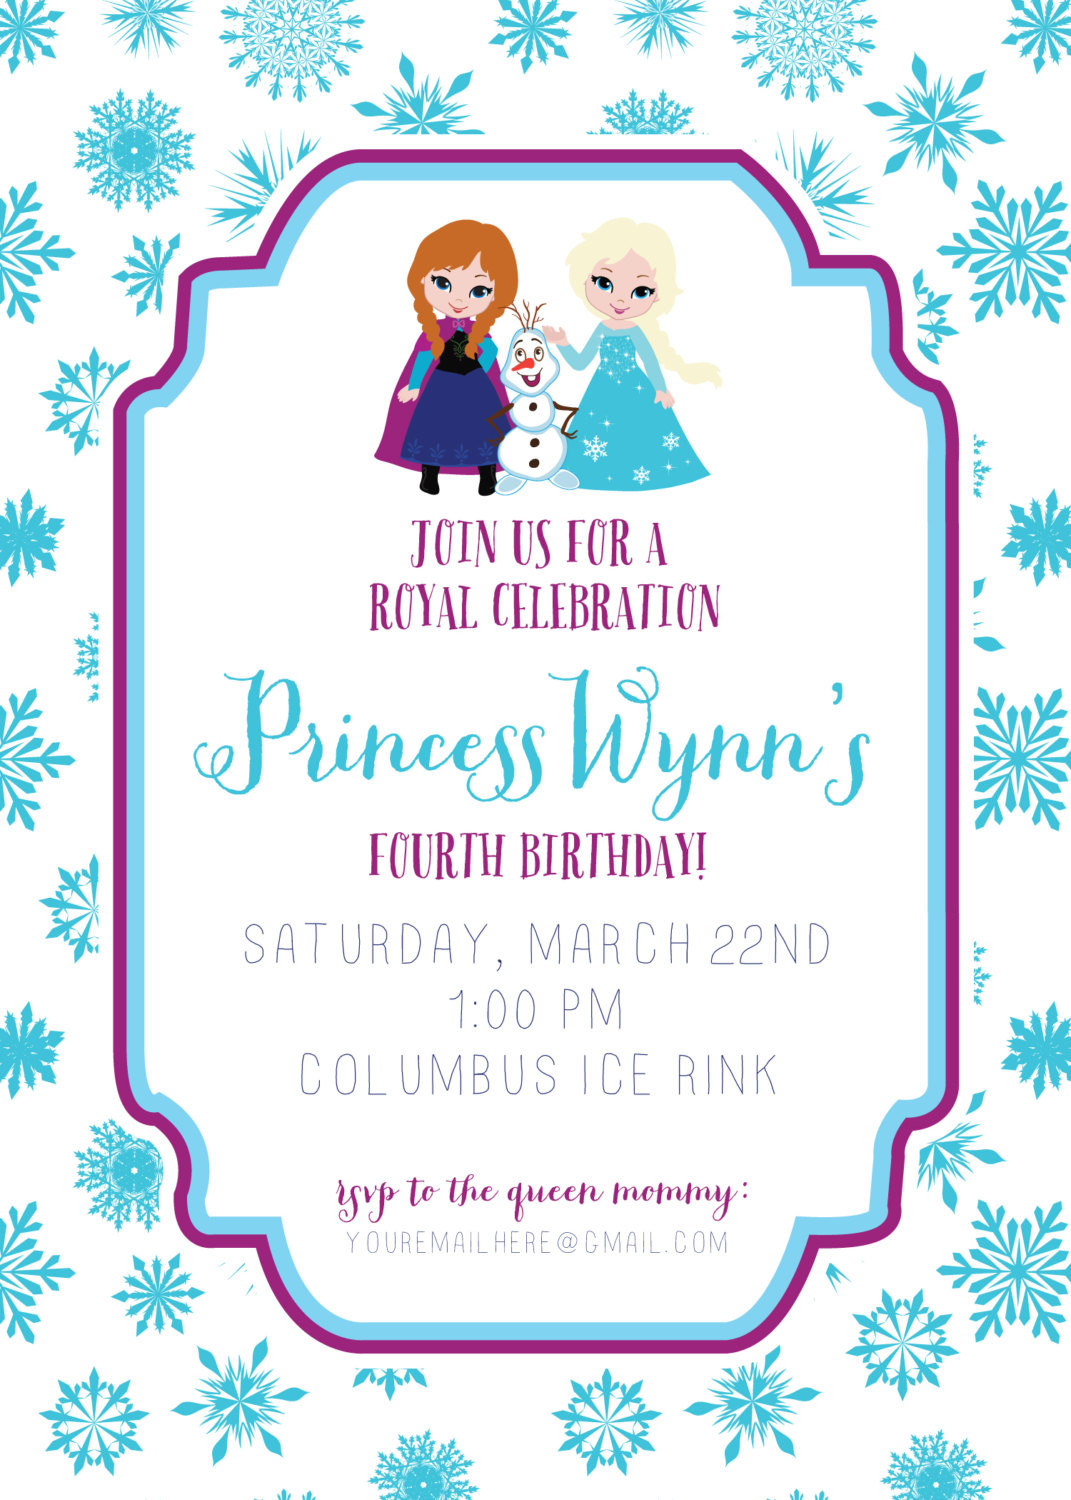 Frozen Invitations Printable Frozen Invitation Frozen Birthday Invitation Disney Frozen